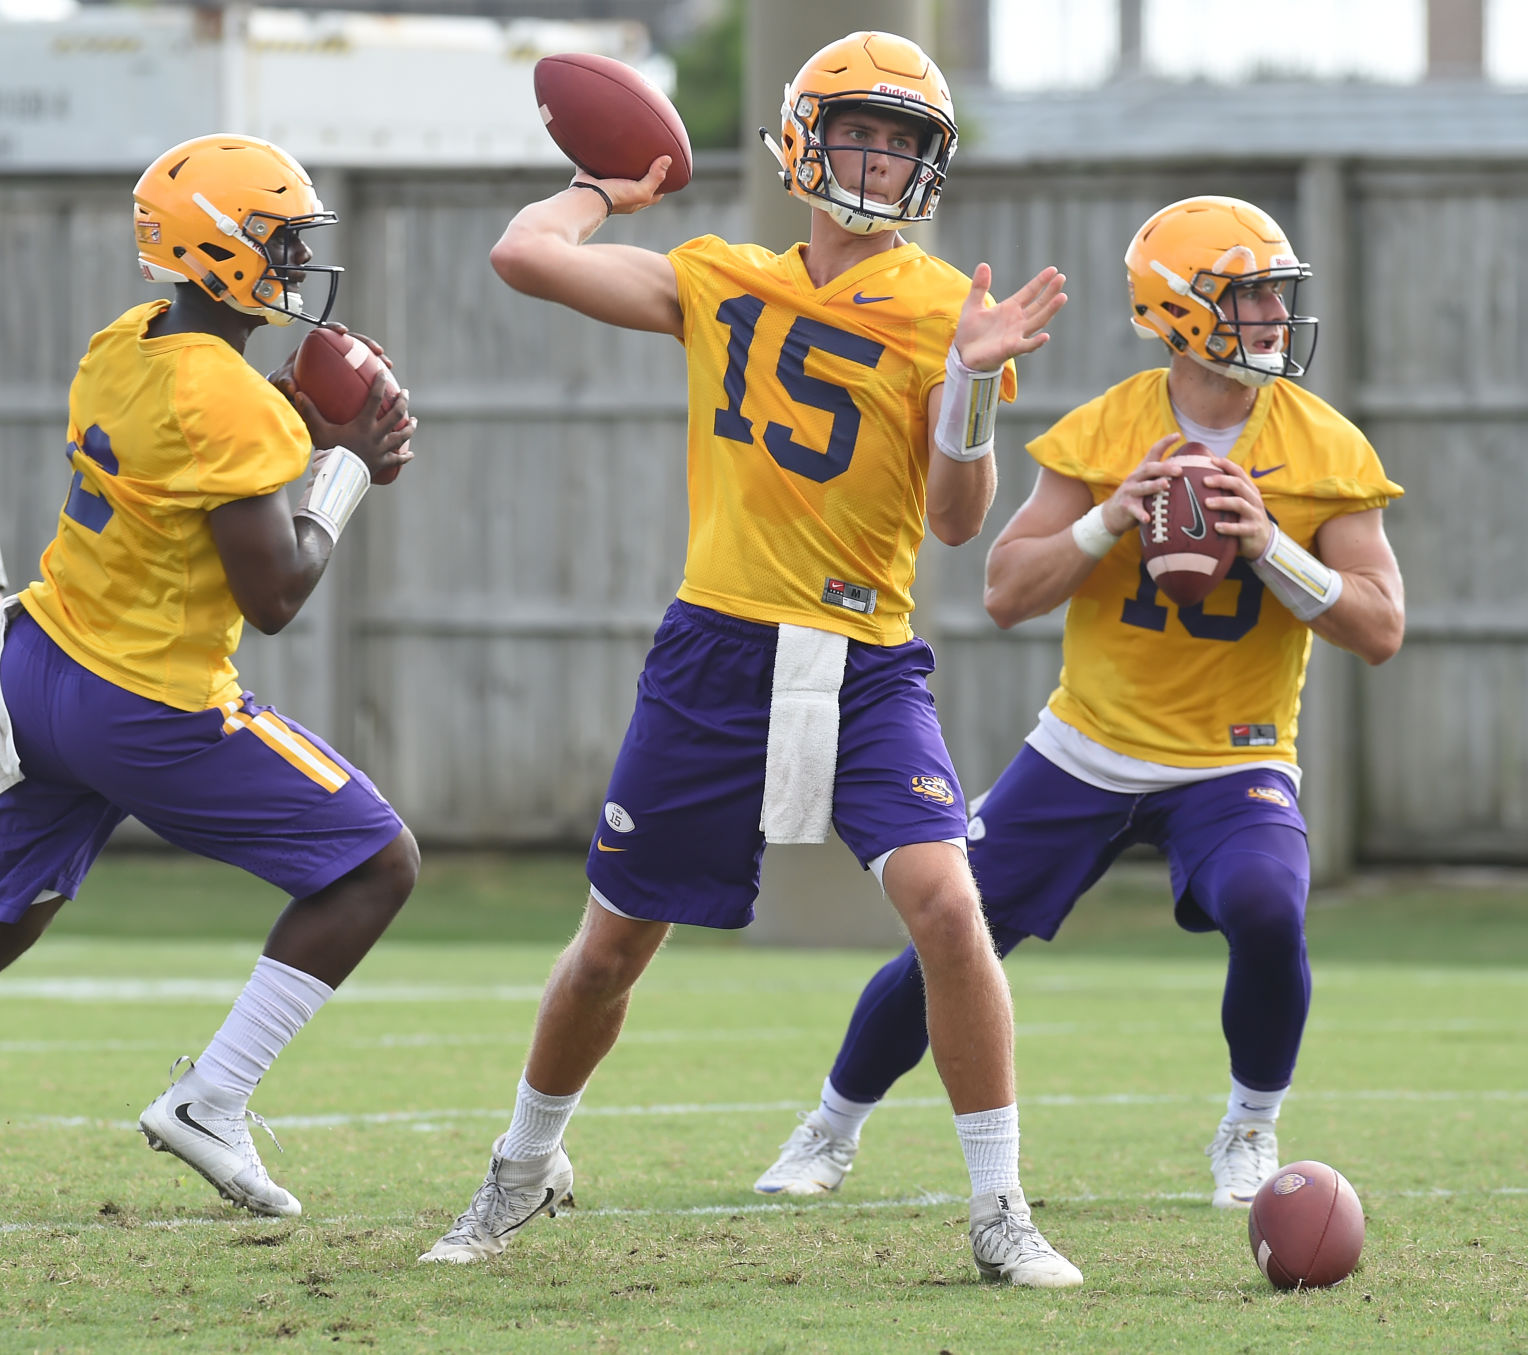 LSU announces Danny Etling as starting quarterback